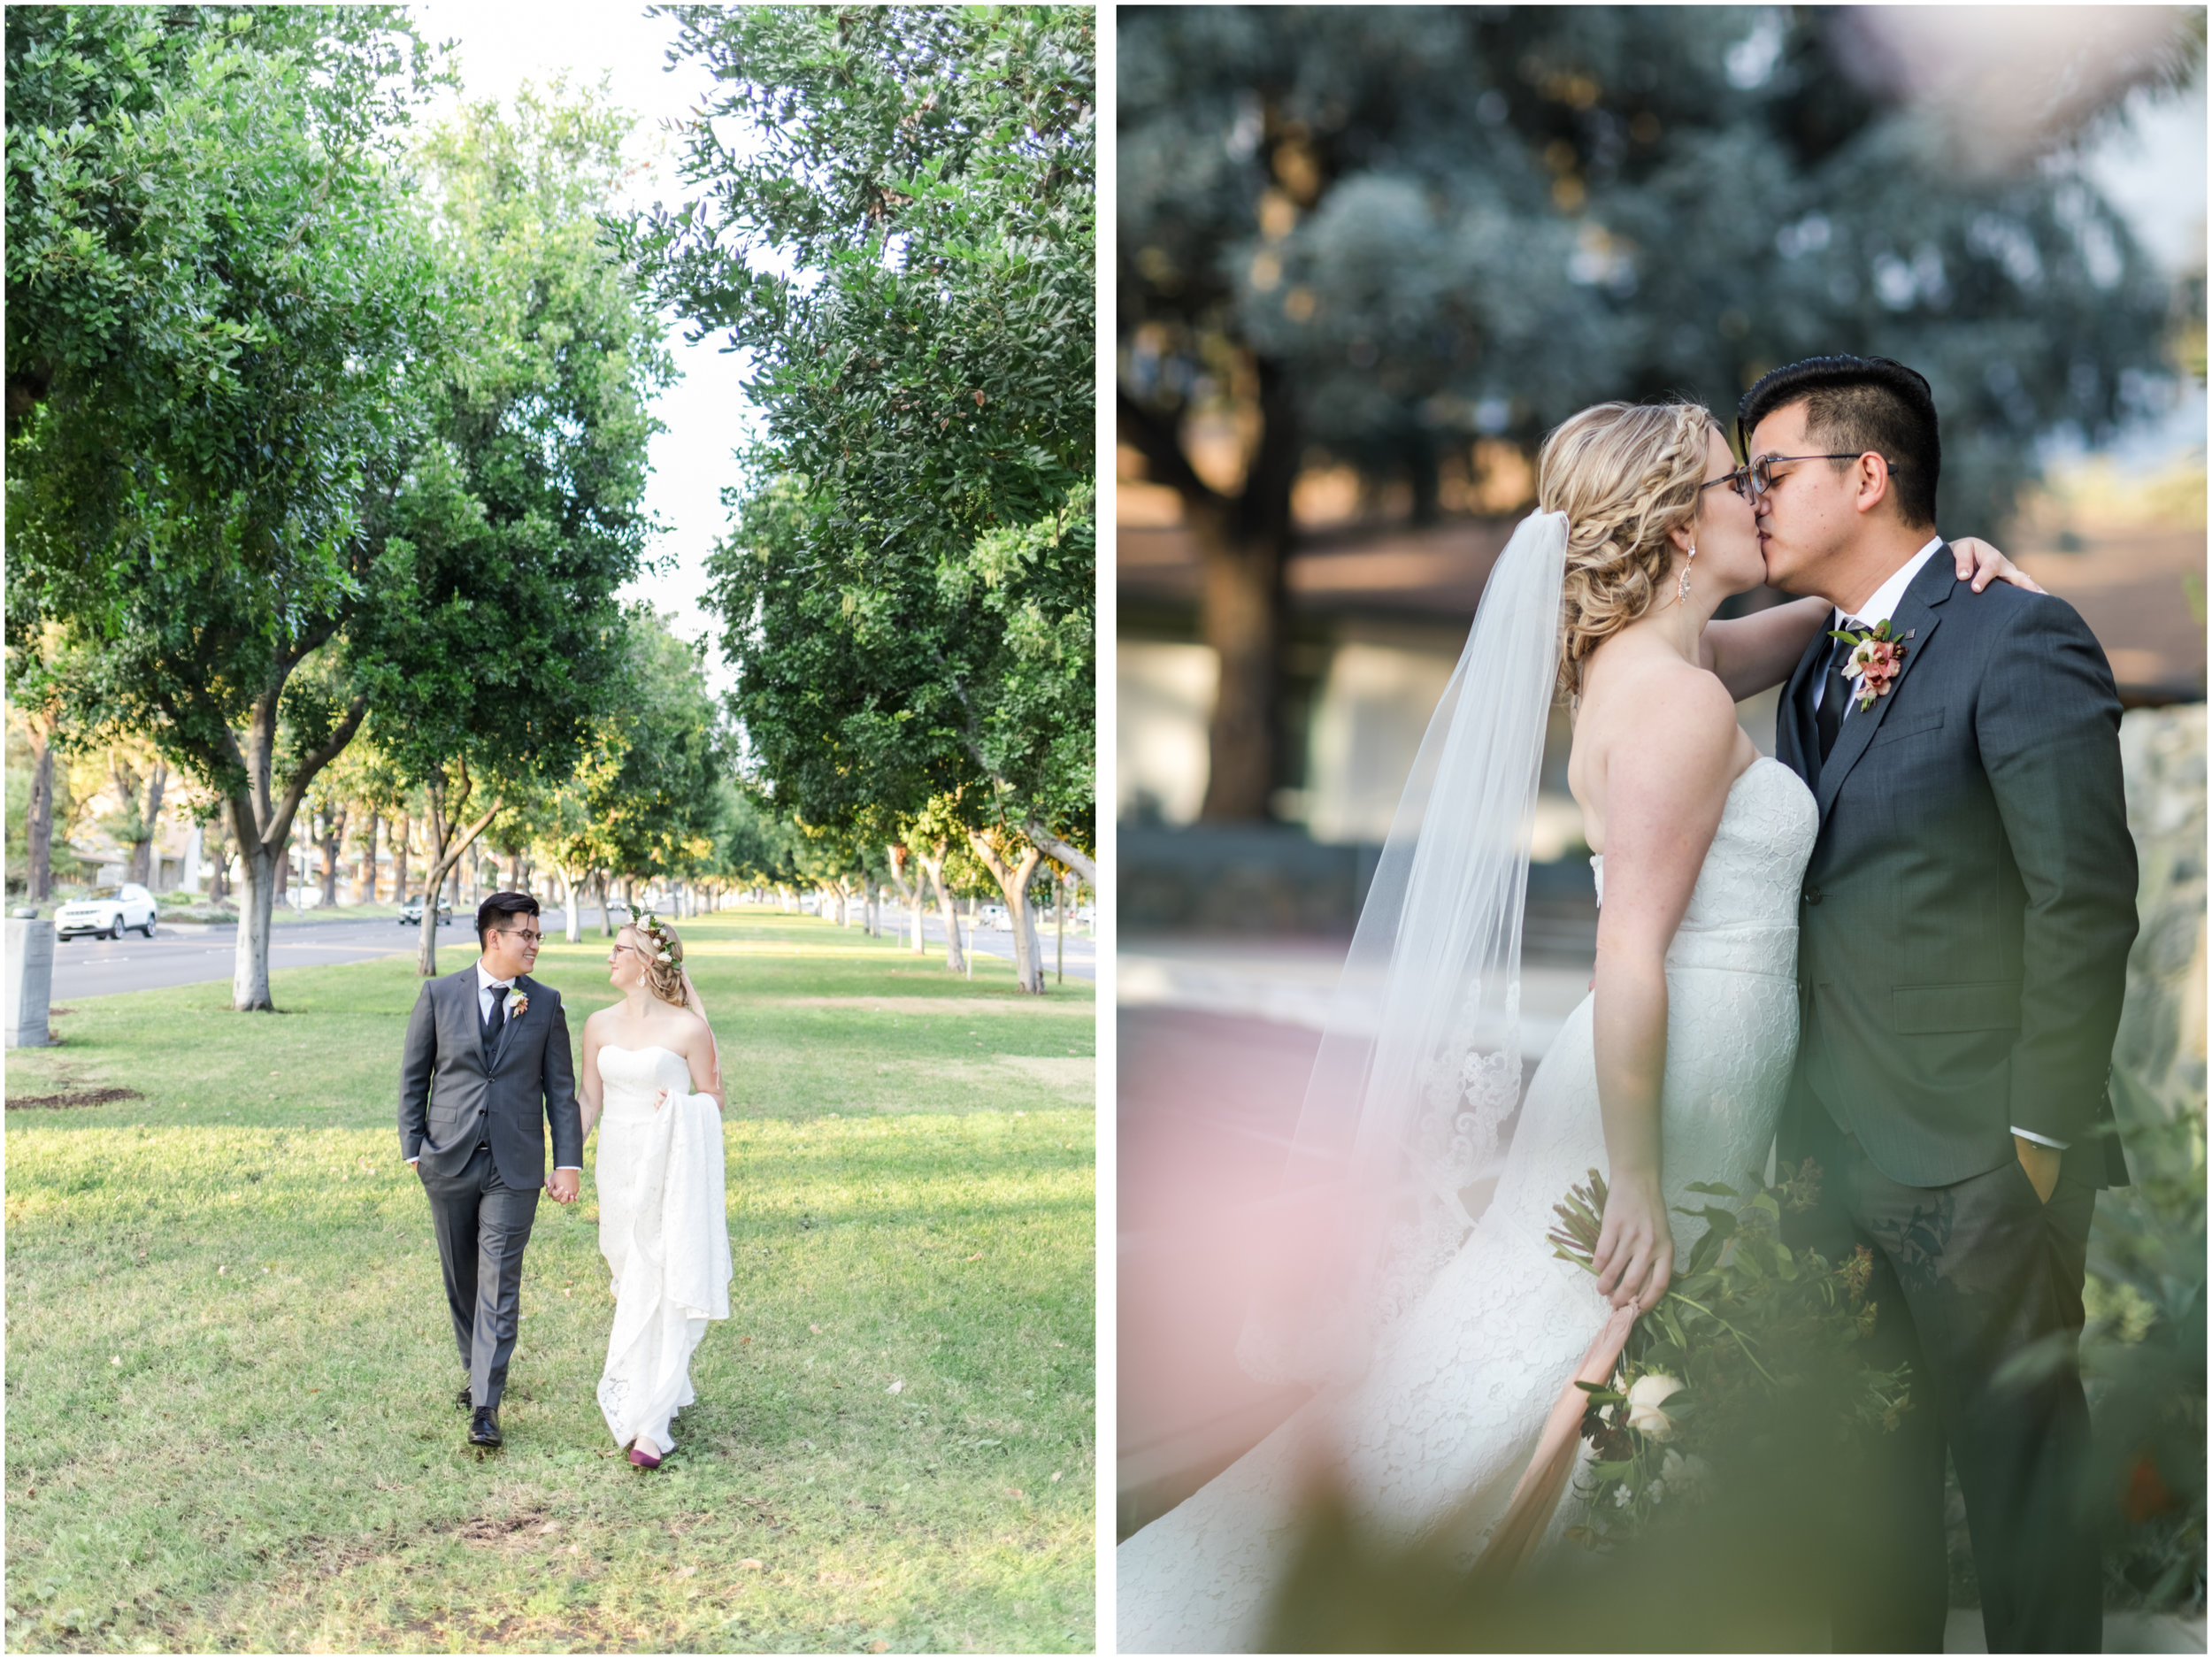 Kansas City Wedding Photographer 21.jpg